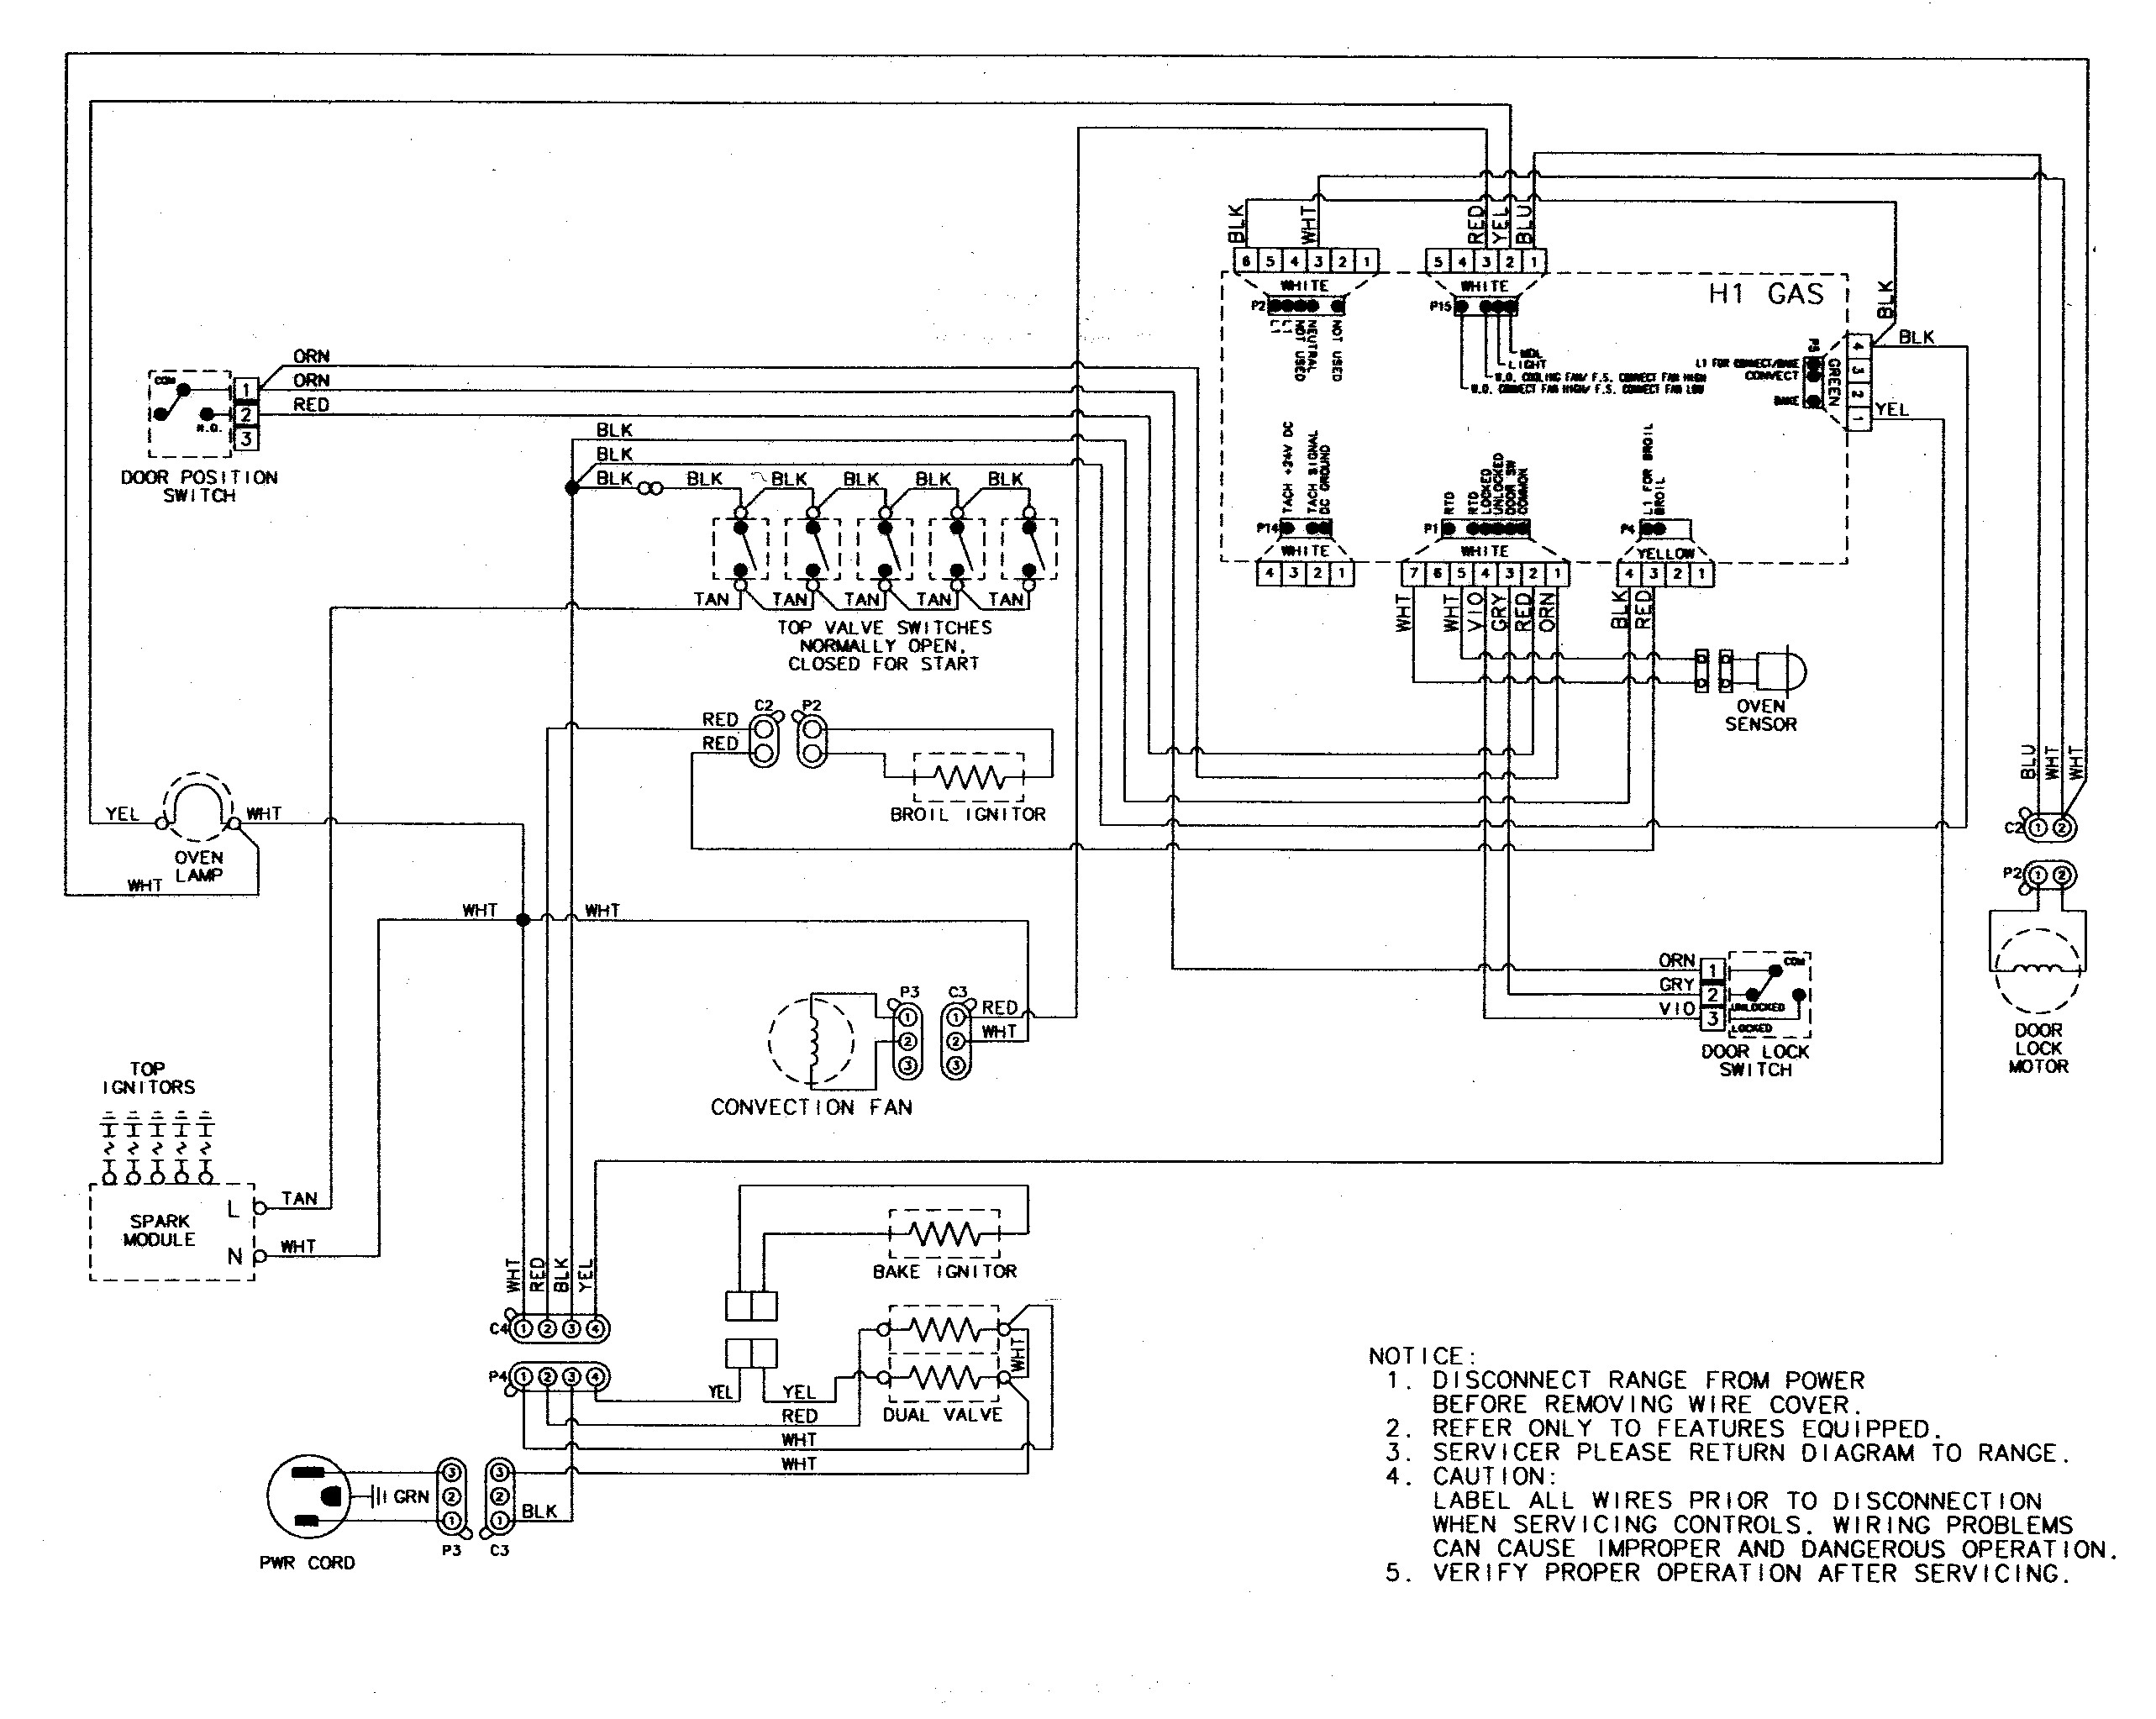 Ge Oven Wiring Diagram Wiring Diagram In Addition Roper Electric Dryer Wiring Diagram Also Of Ge Oven Wiring Diagram